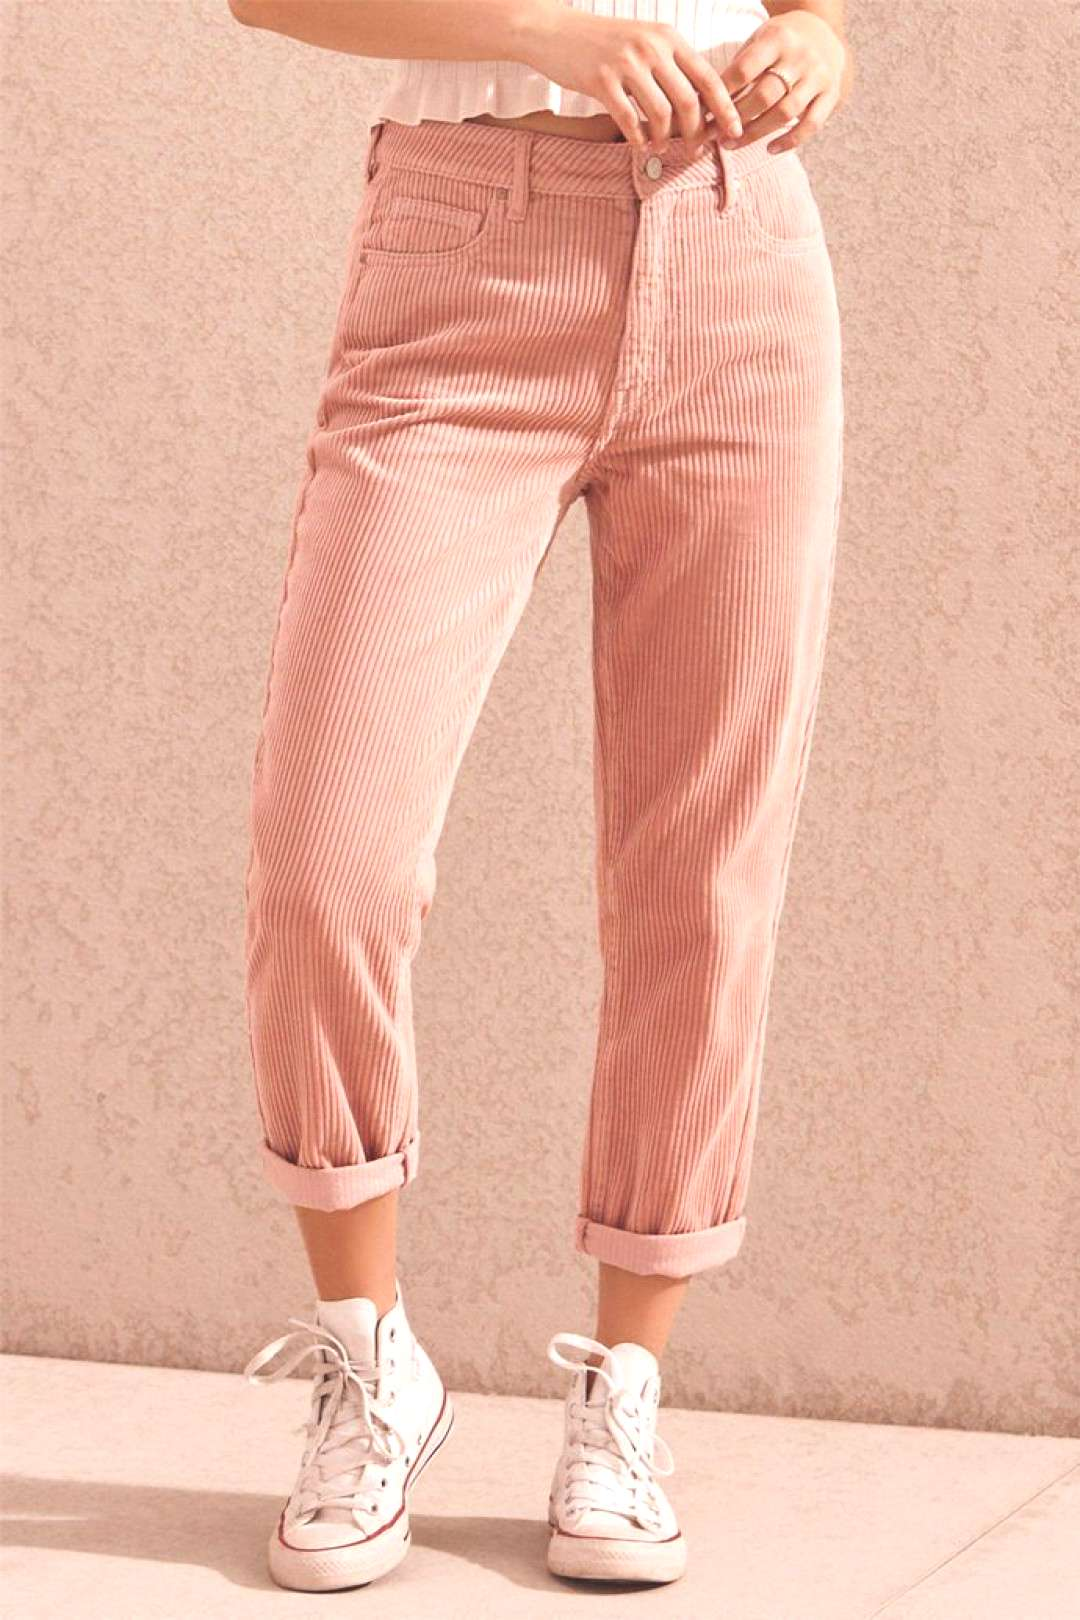 PacSun Hibiscus Cord Mom Jeans - PacSun Hibiscus Cord Mom Jeans -